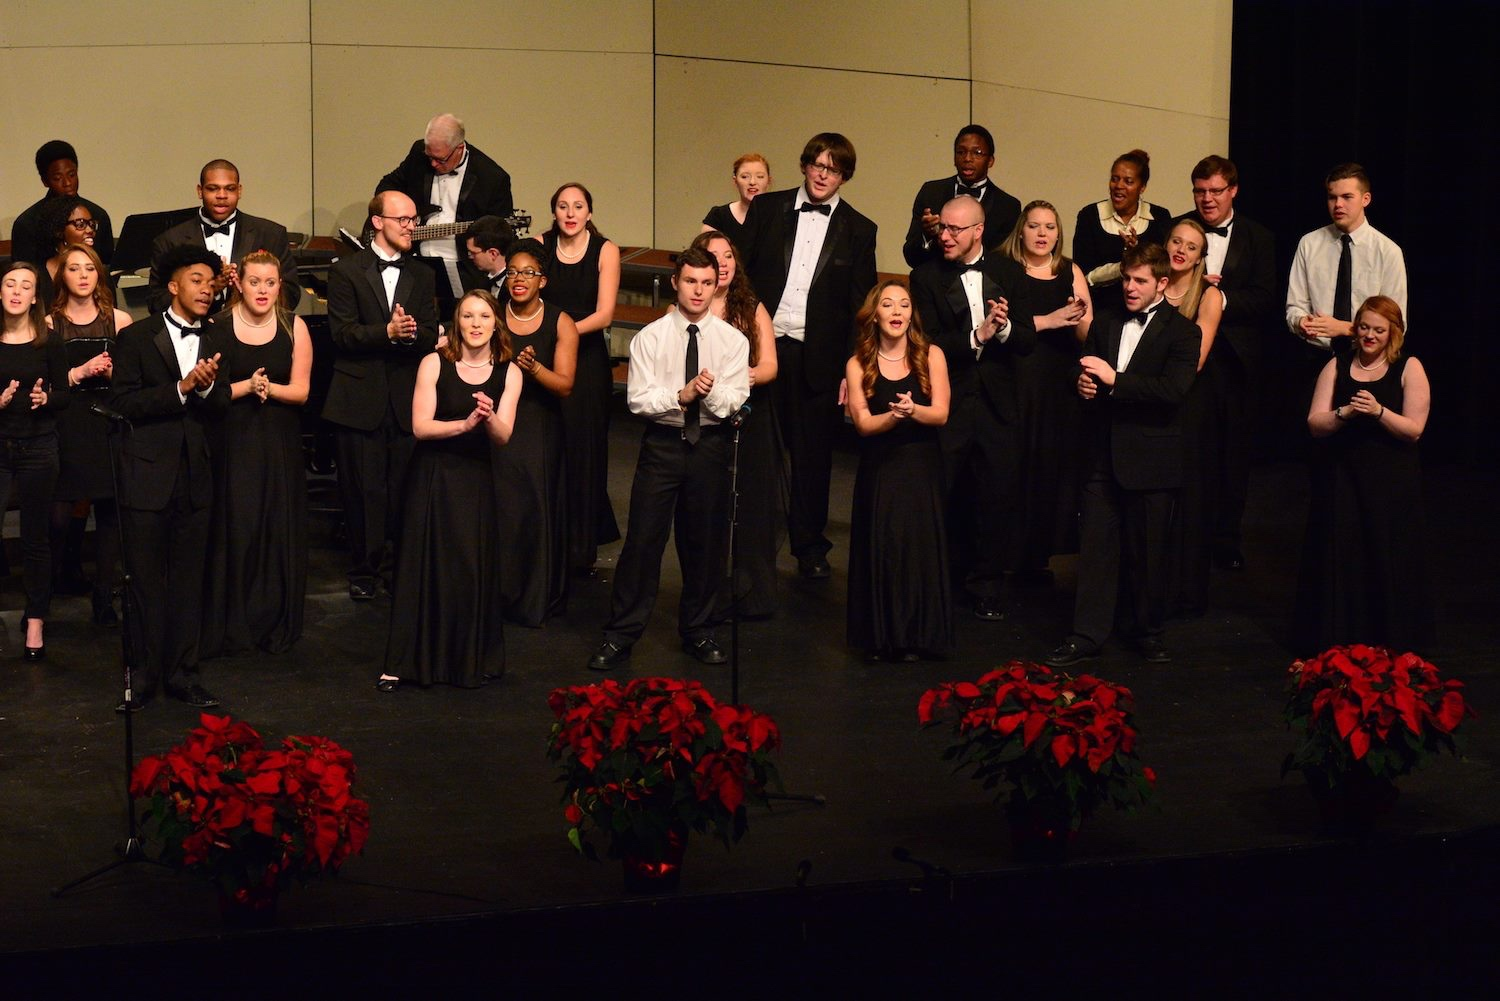 Damian (third row, middle) during a Chorale performance.